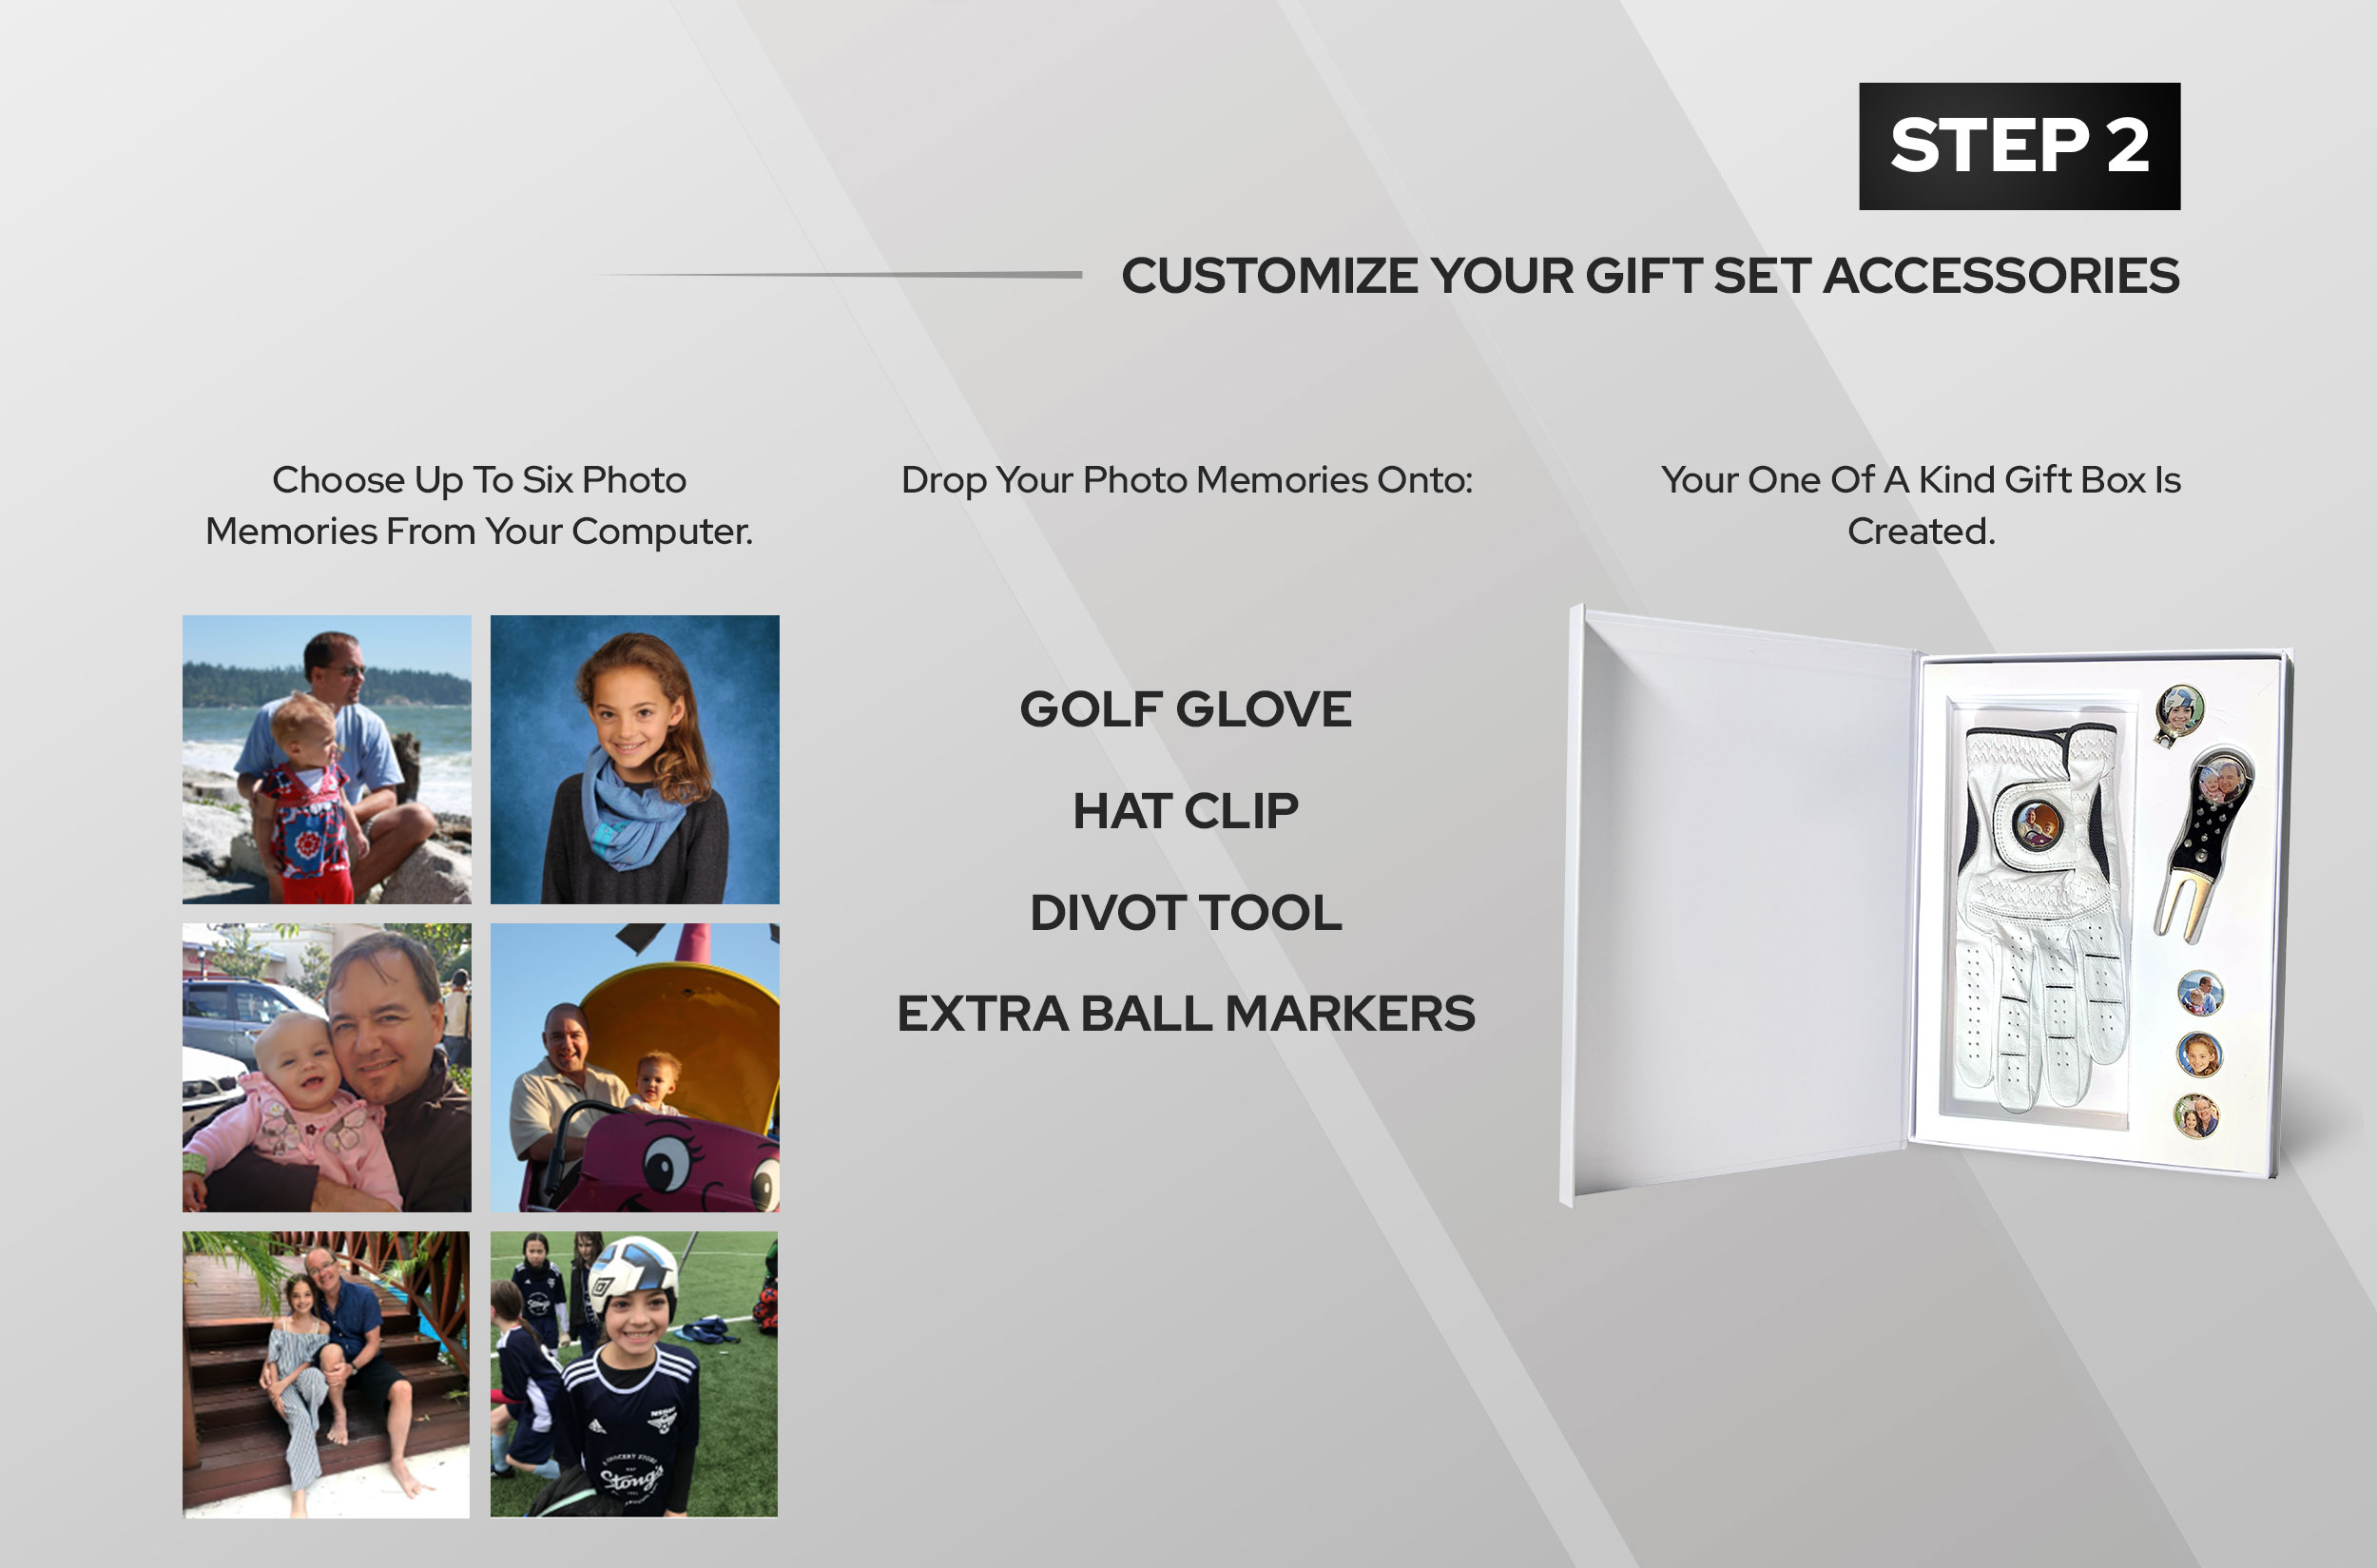 Step 2 - Customize Your Gift Accessories